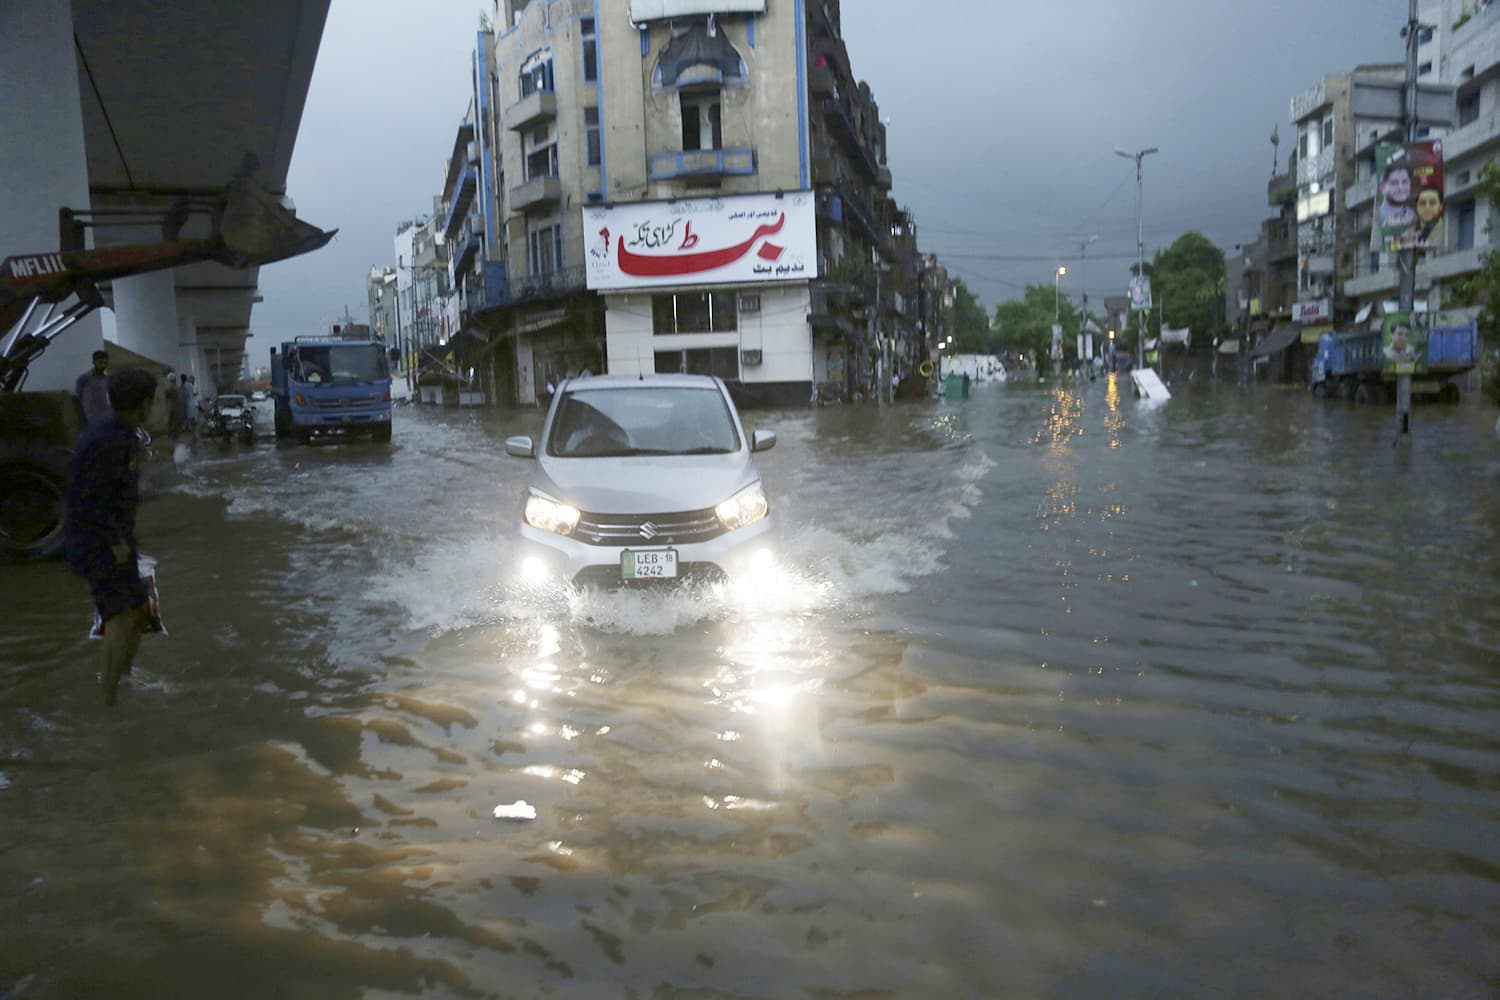 People travel through a road still flooded in the evening after heavy rainfall in the early morning hours AP